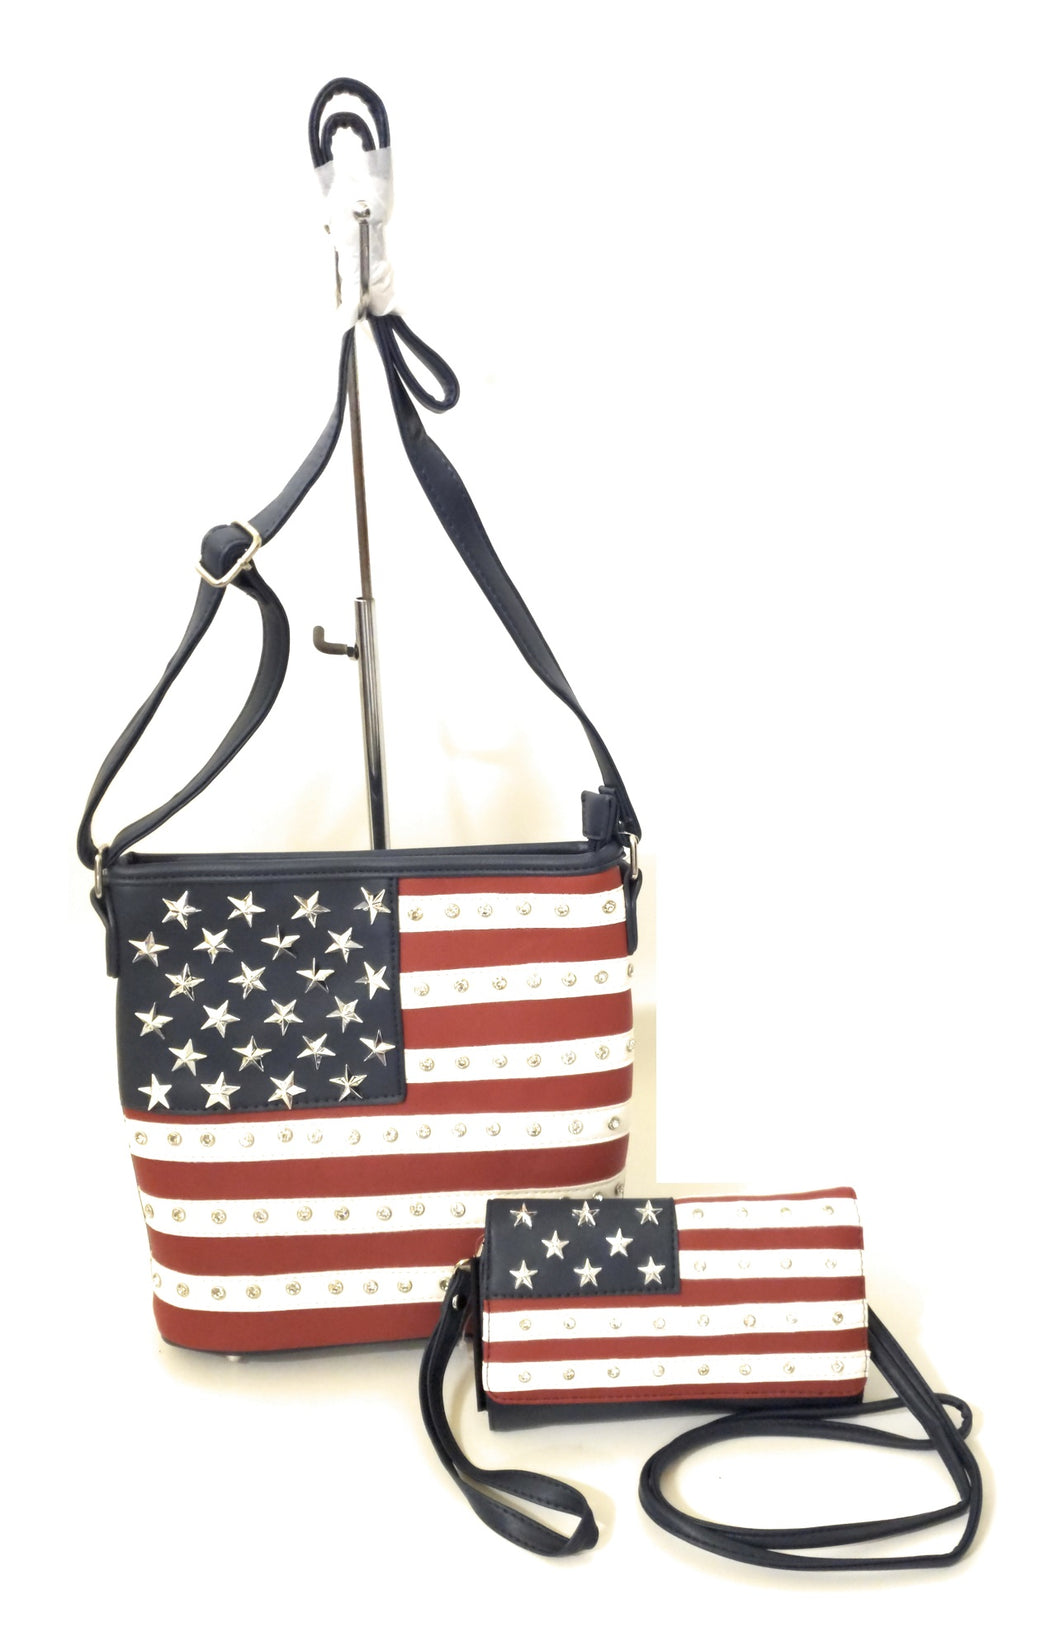 USA American Flag Patriotic Concealed Carry Messenger Bag Purse Wristlet Wallet Set